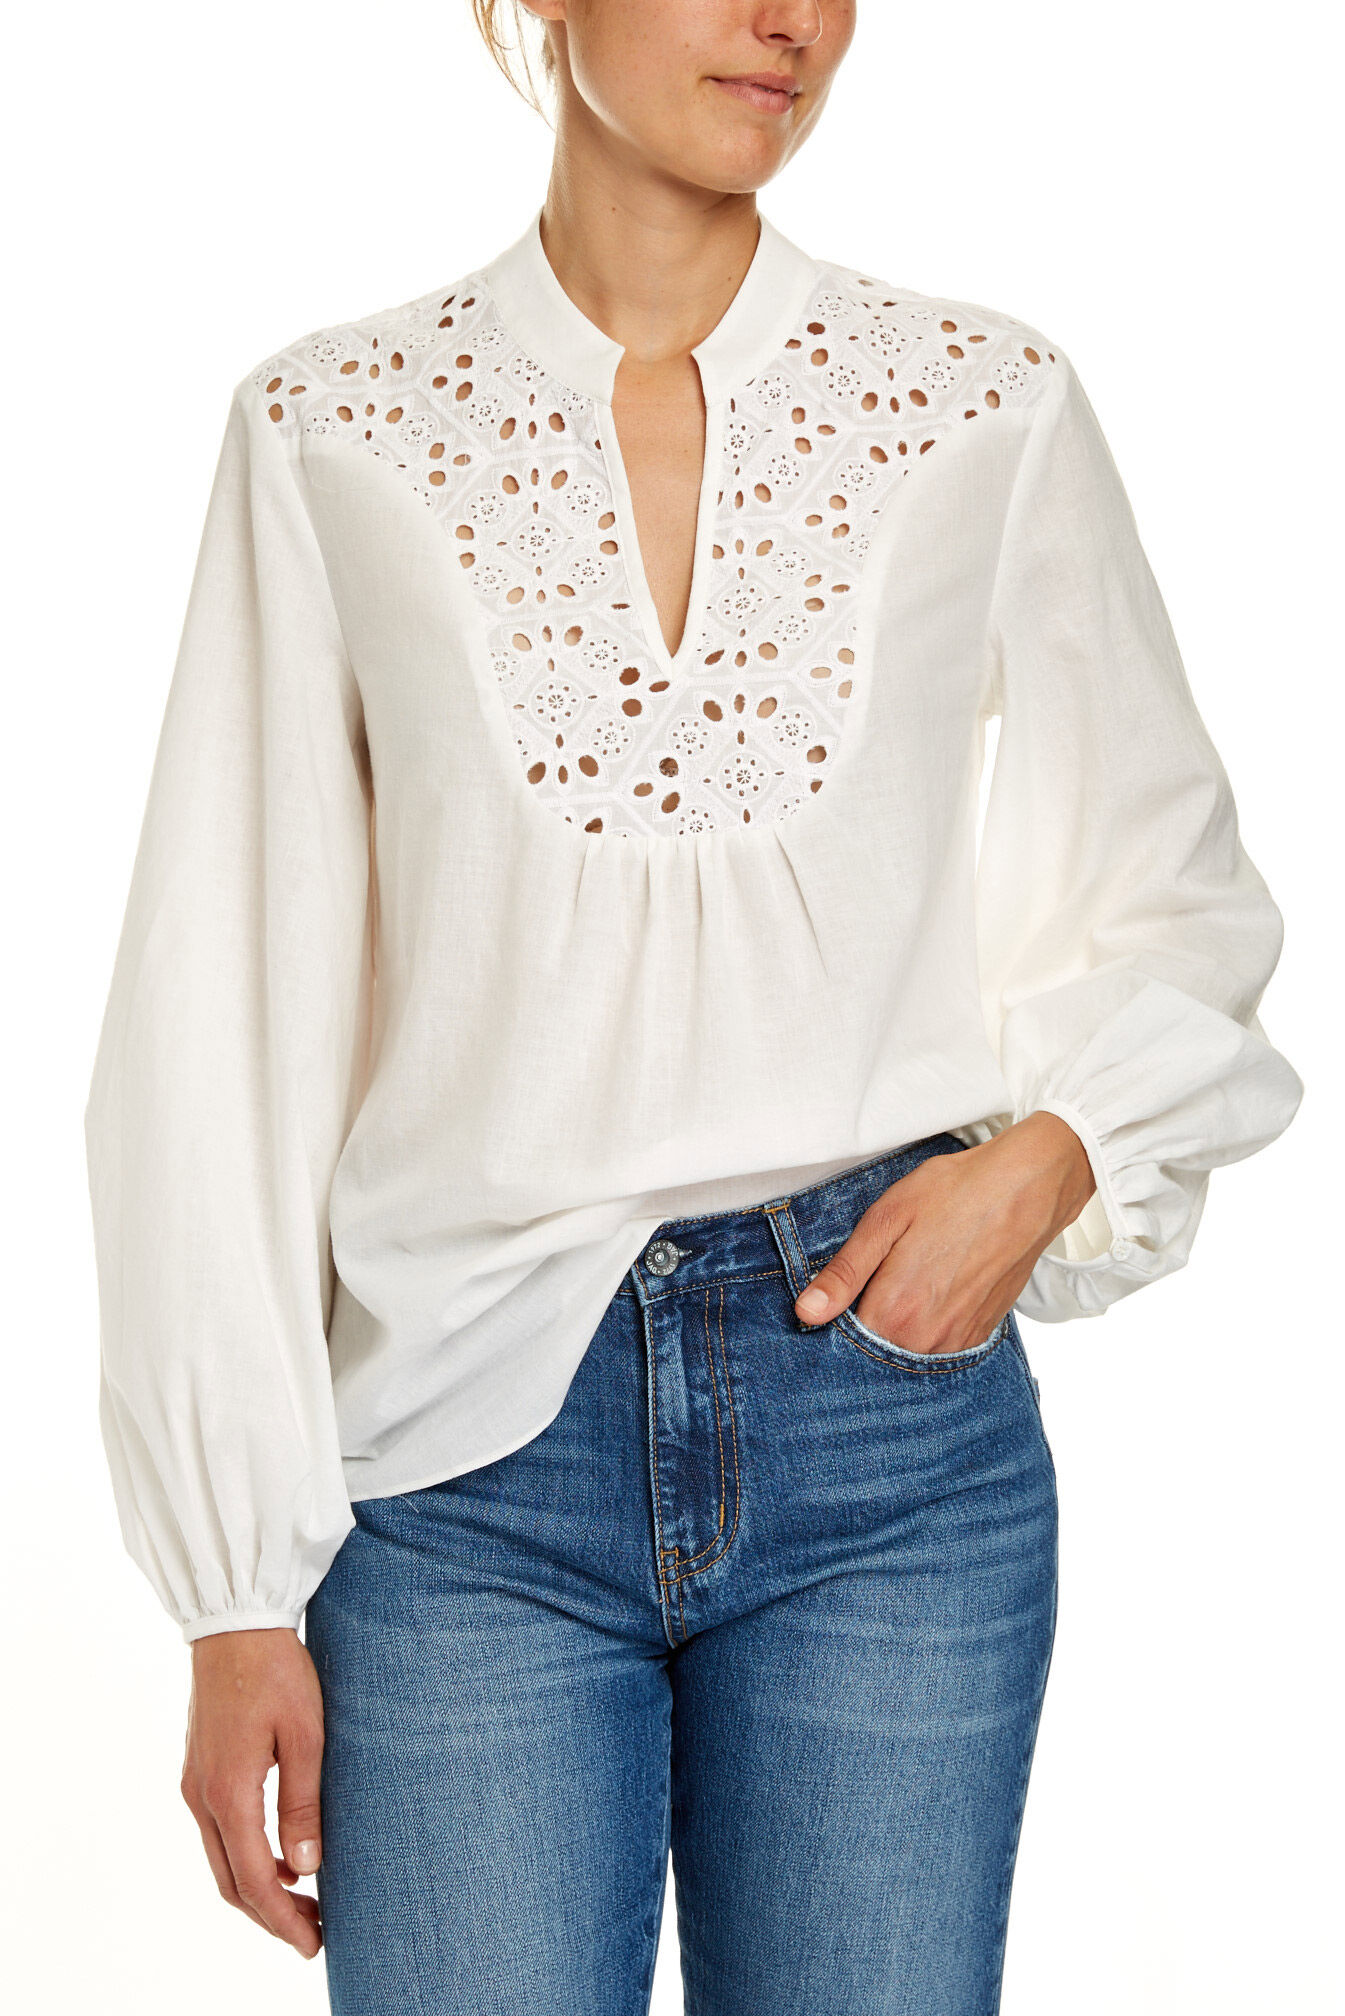 Best prices on Plus size dressy tops in Women's Shirts & Blouses online. Visit Bizrate to find the best deals on top brands. Read reviews on Clothing & Accessories merchants and buy with confidence.